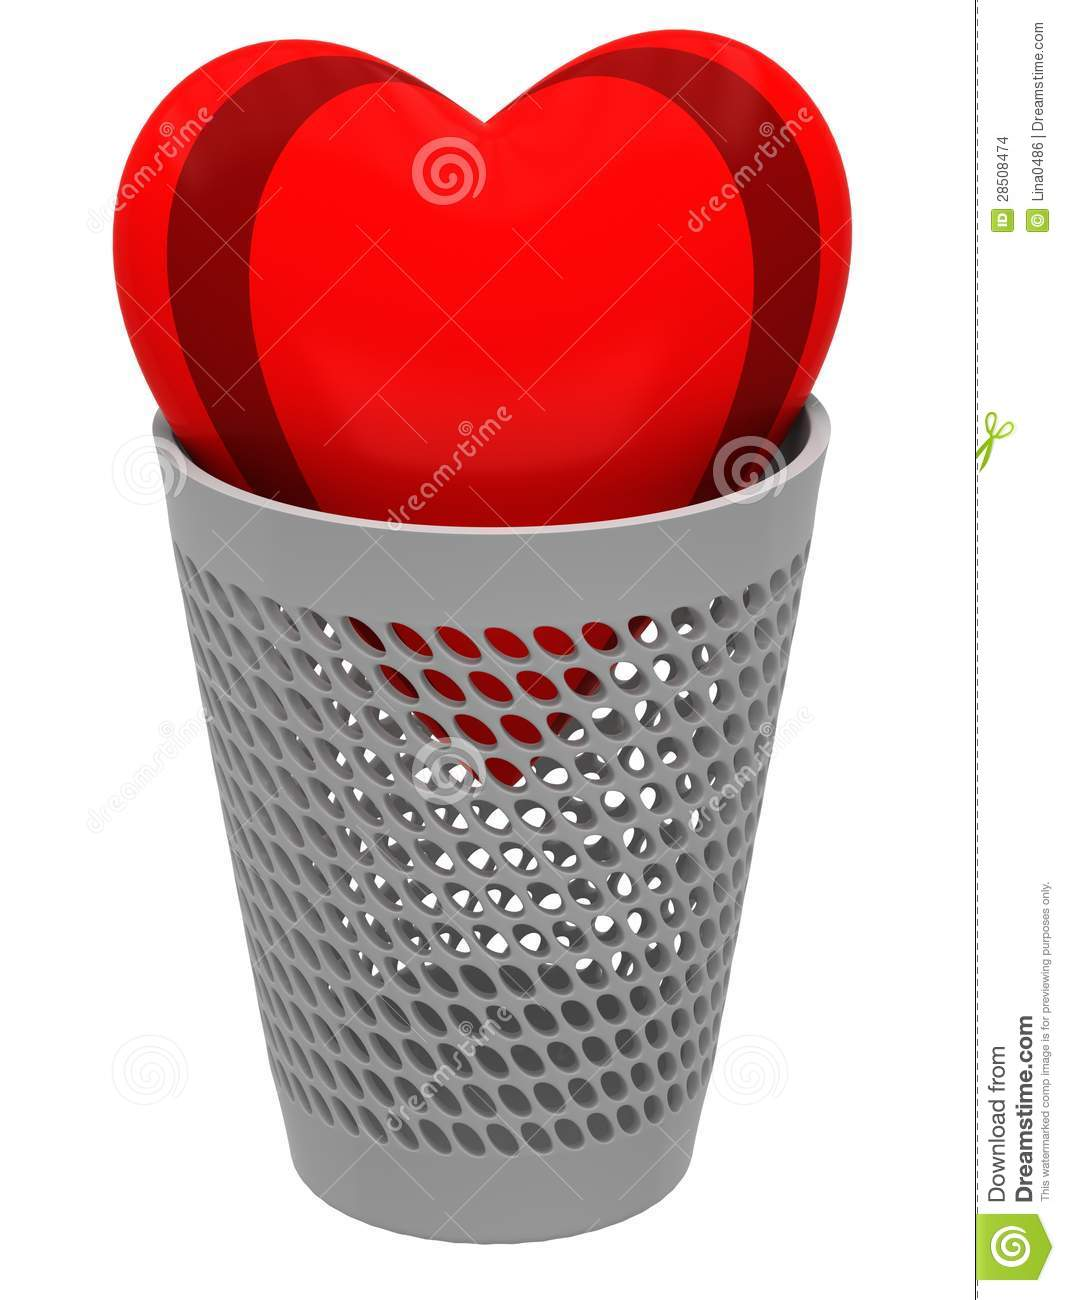 Red heart in a wastebasket stock images image 28508474 - Rd wastebasket ...